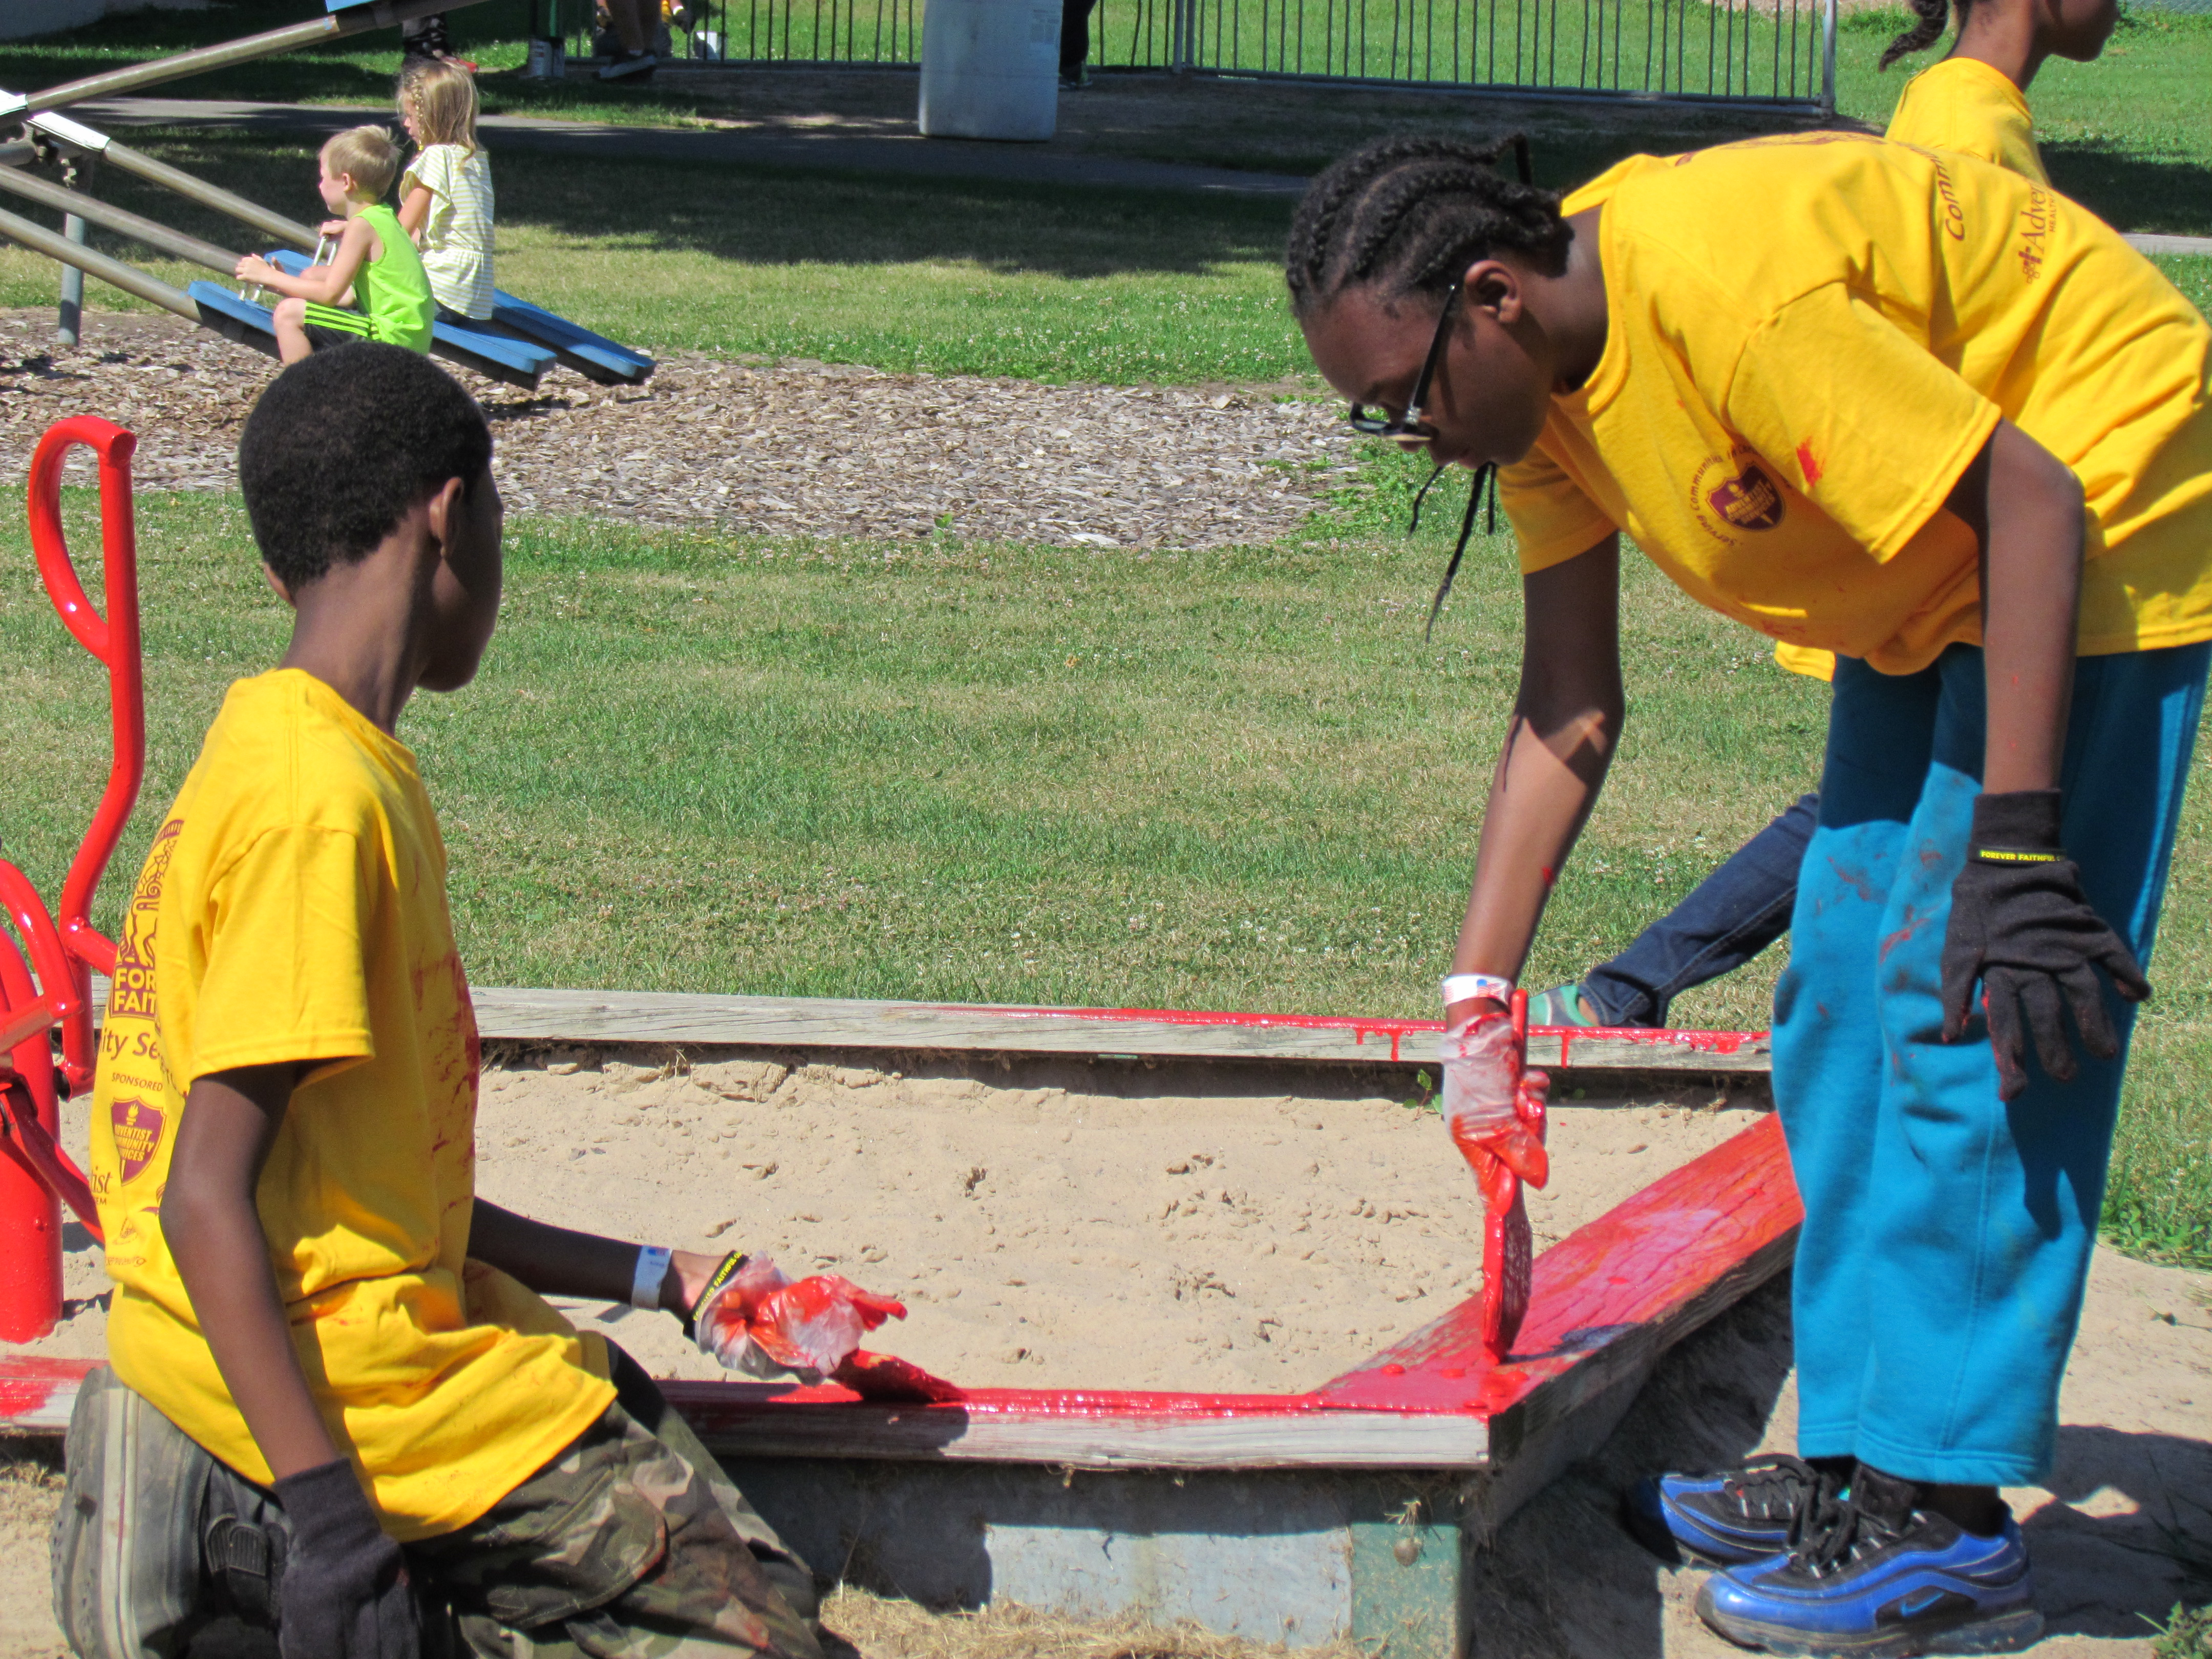 Bronx, NY Pathfinders Painting a Sand Box